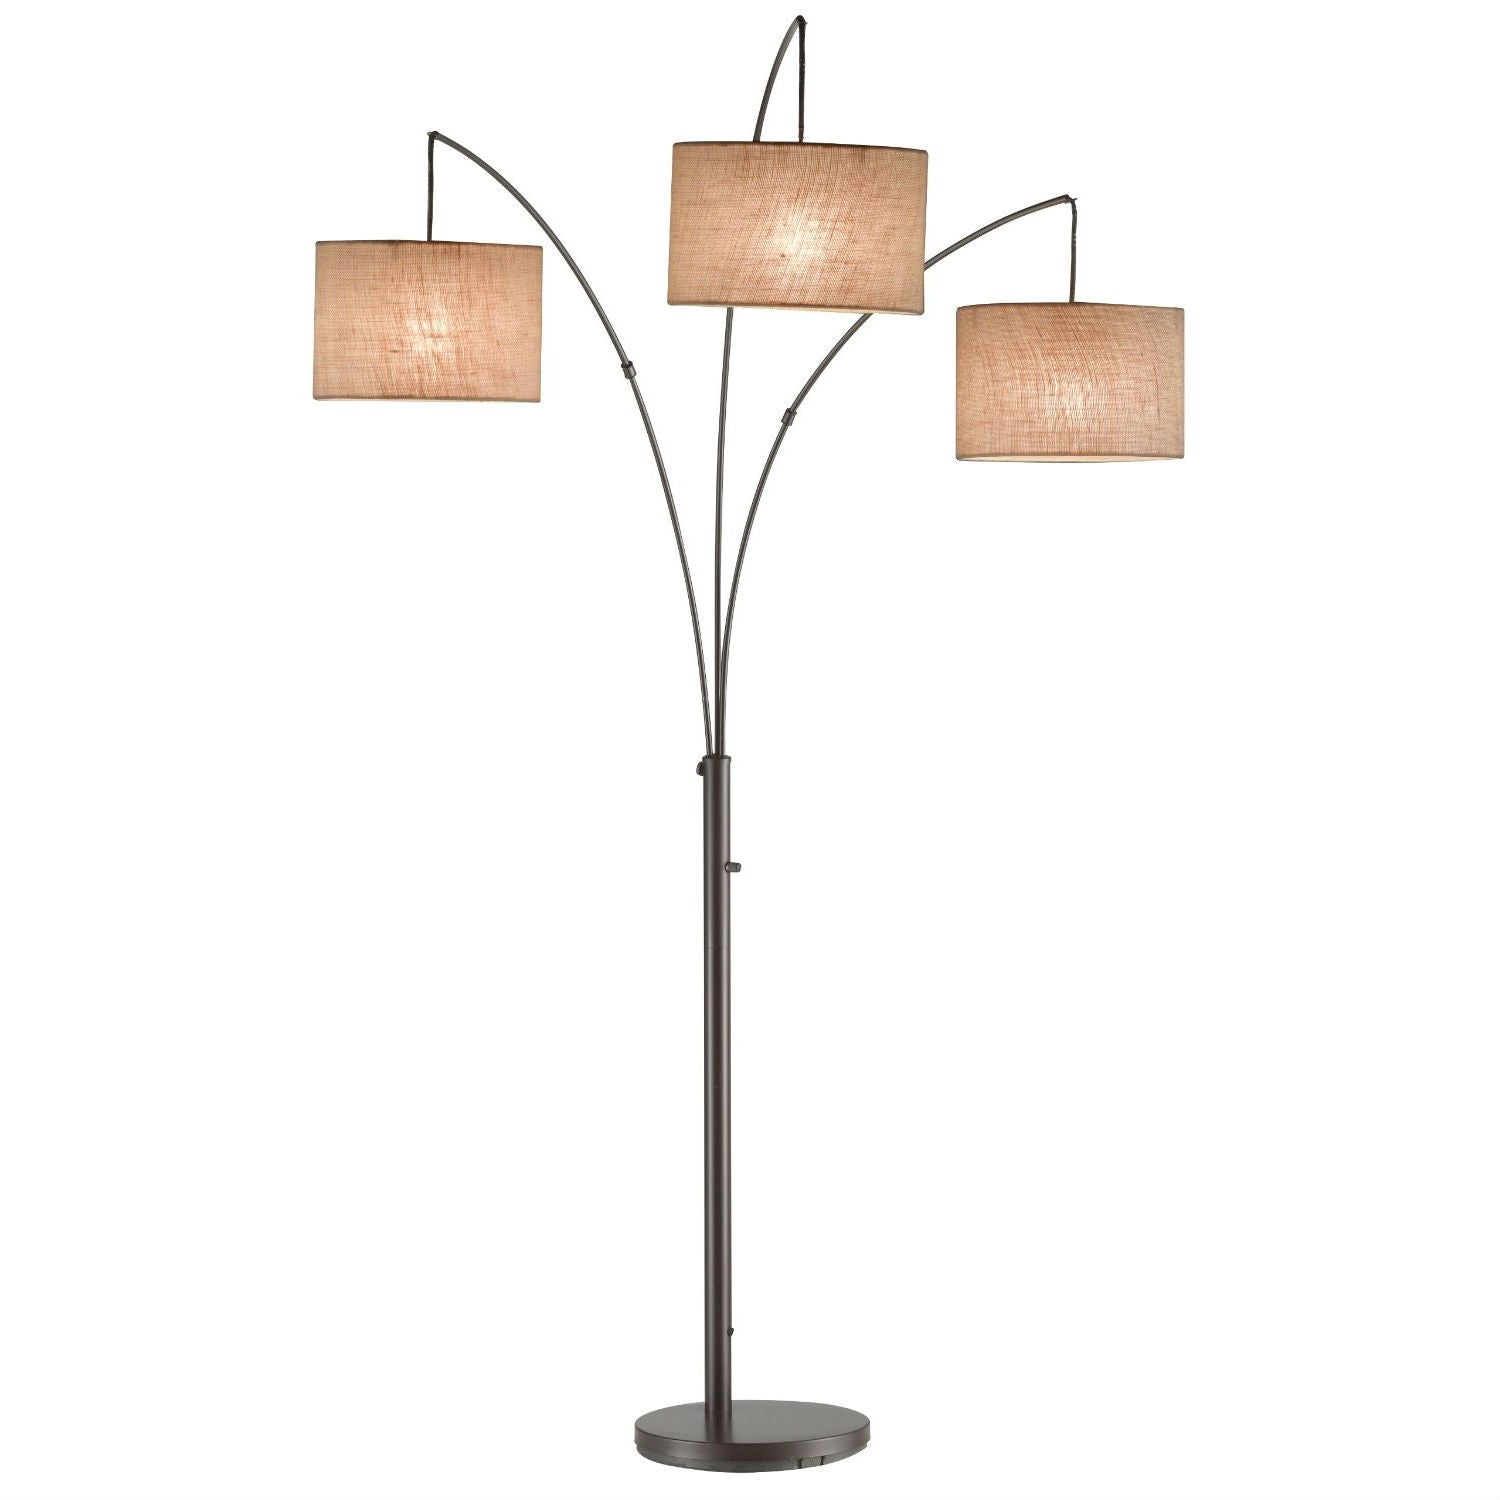 Bronze floor lamp with three different branches to lights with round drum shades on them.